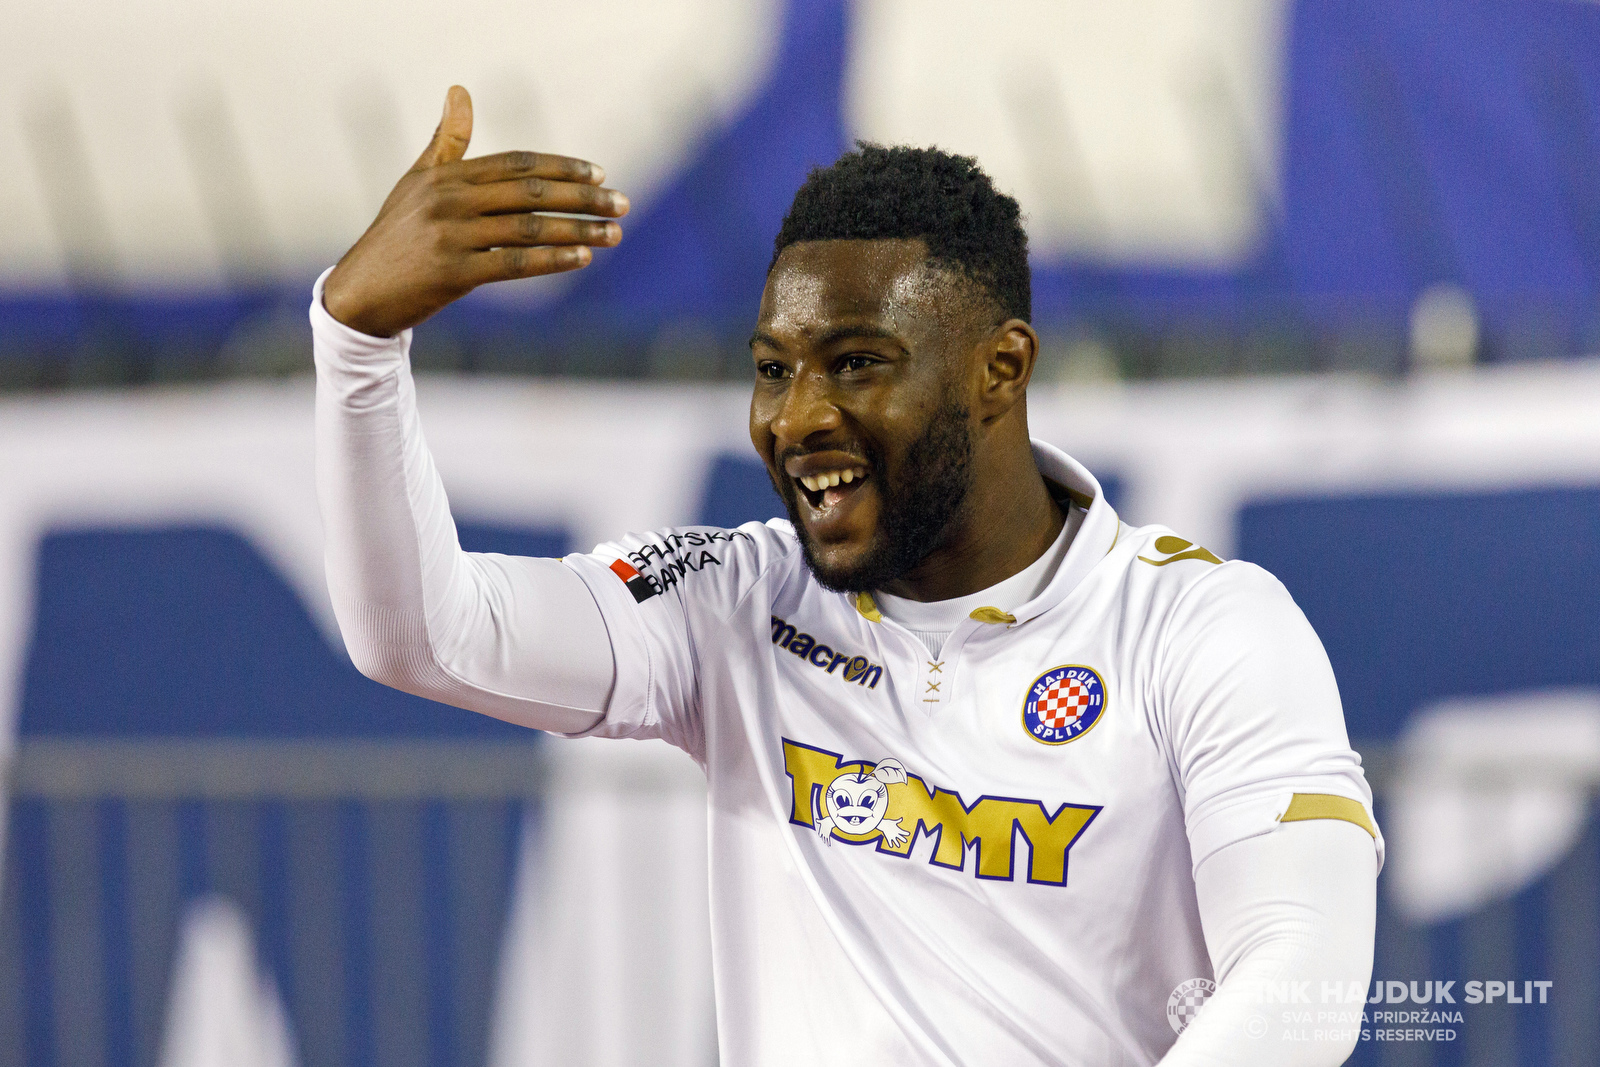 Striker Said Ahmed Said on target as Hajduk Split run rout in Croatia